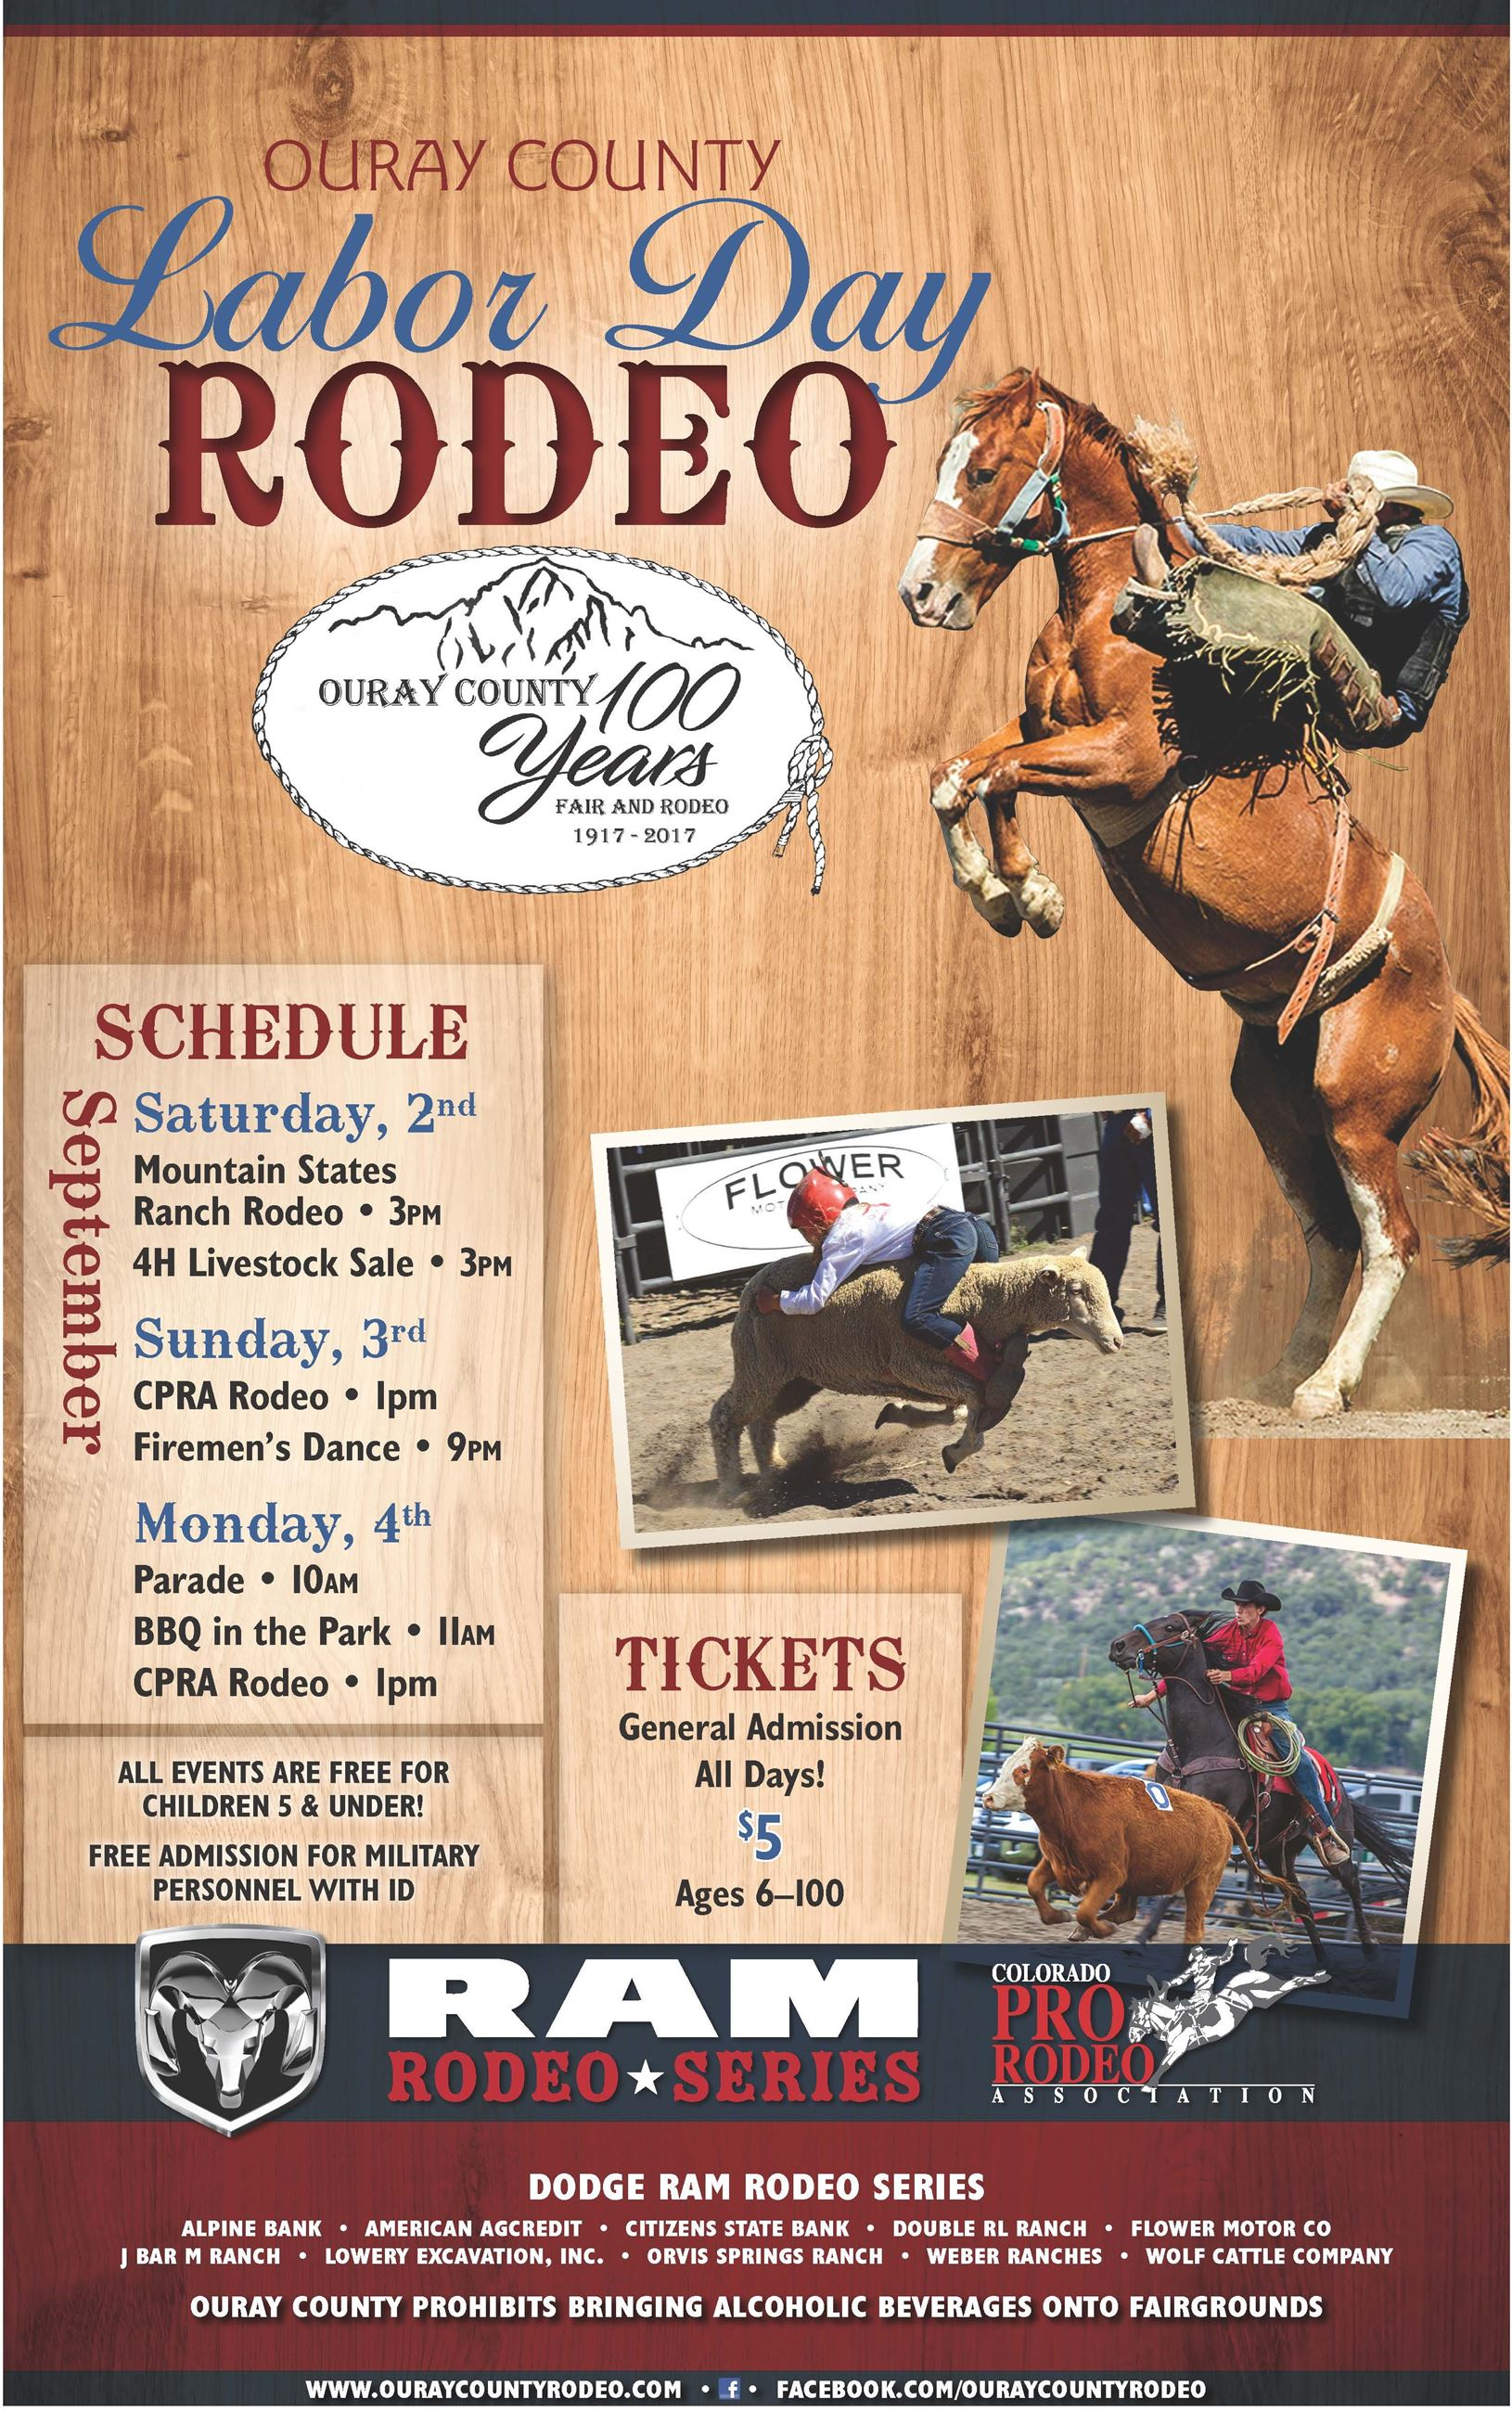 2017 Ouray County Rodeo